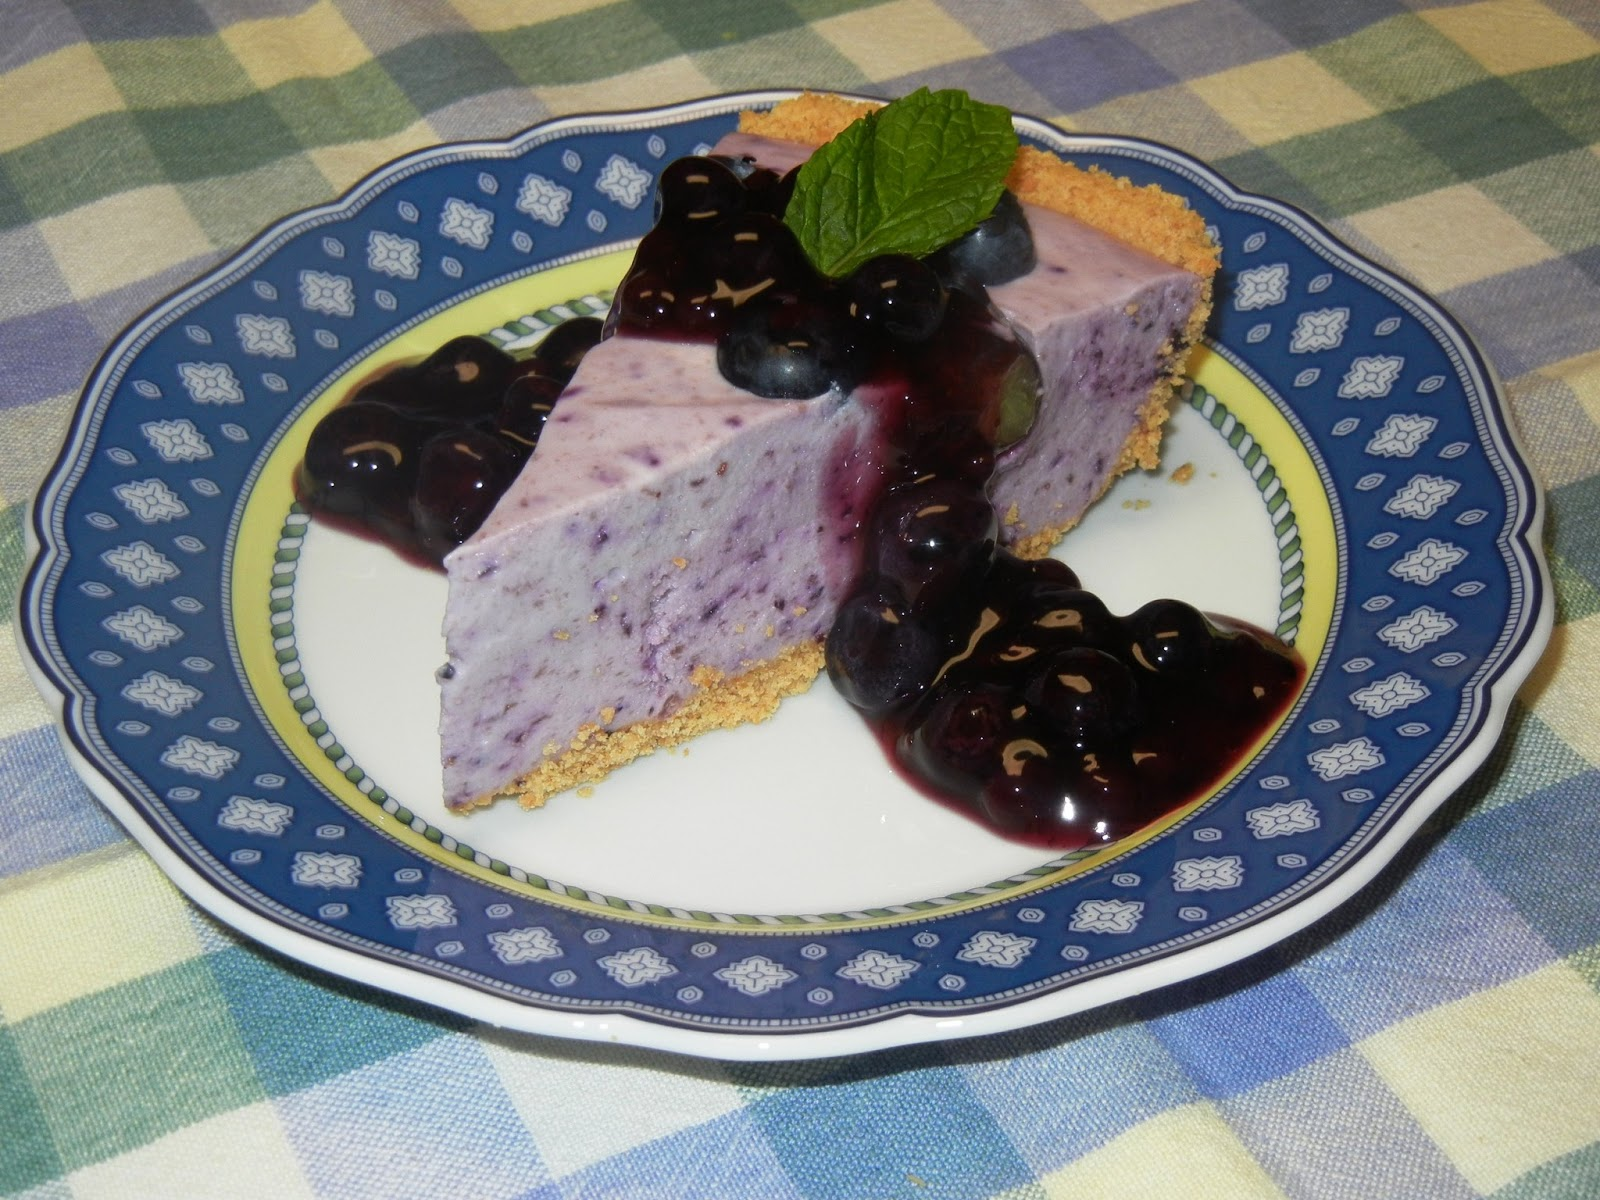 Cooking with Julian: Blueberry No-Bake Cheesecake